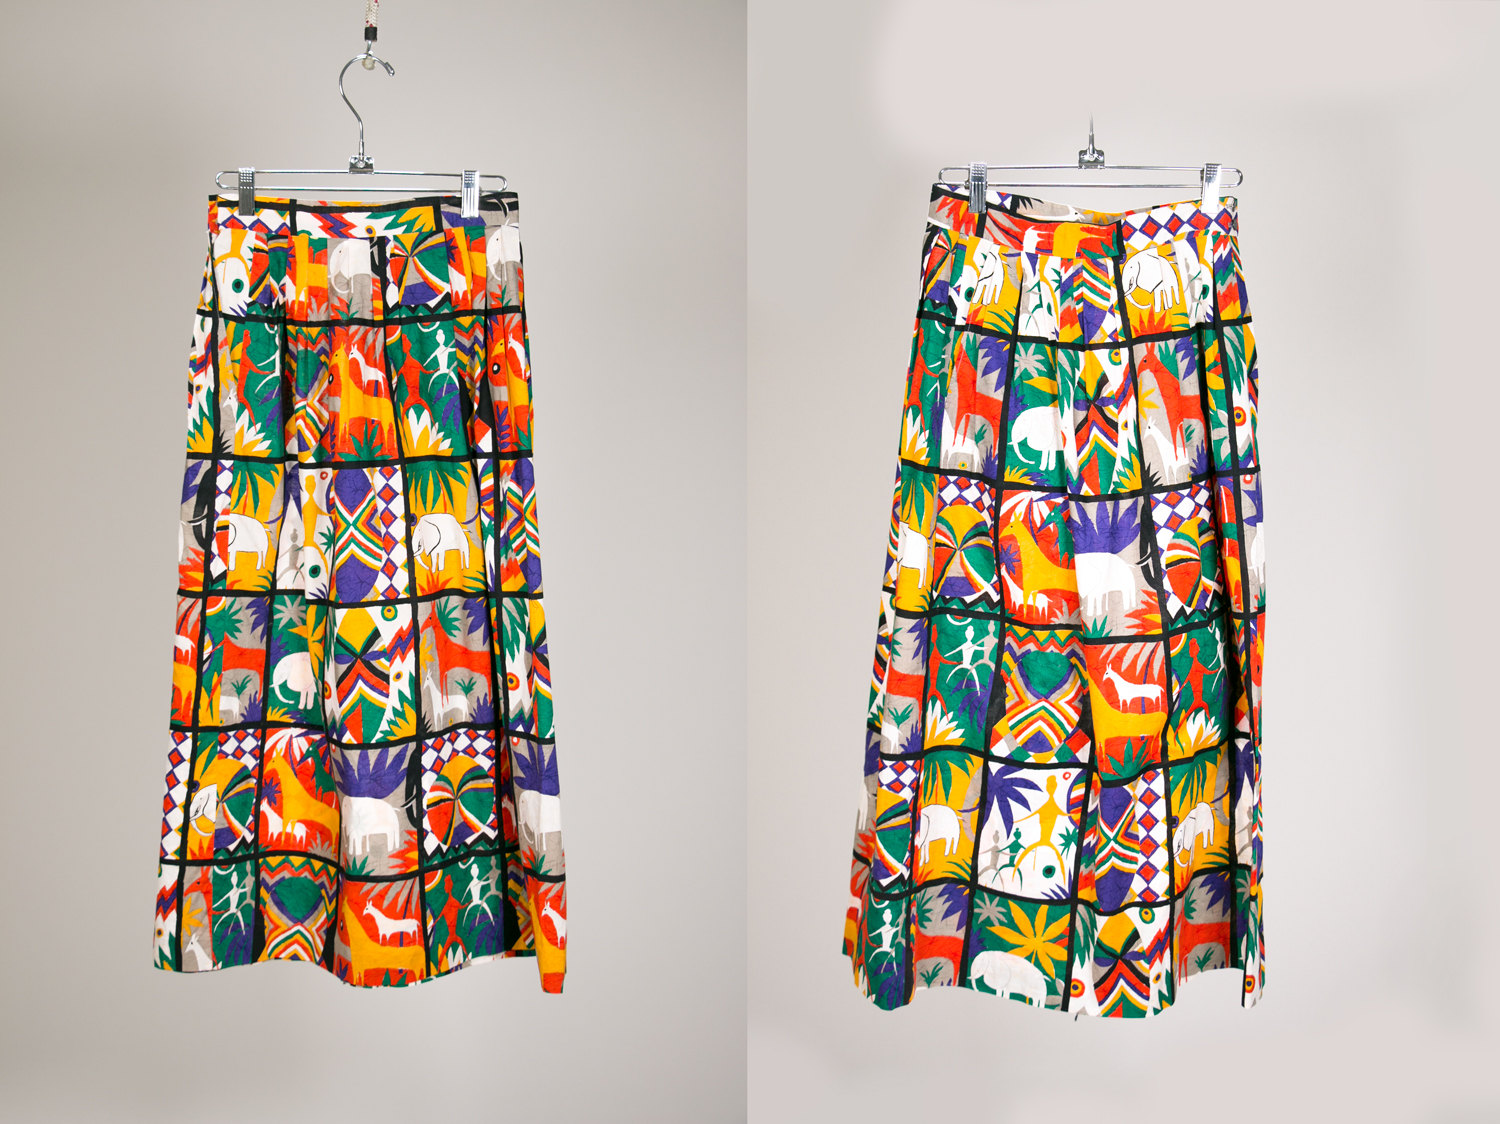 Playful Vintage African Print Skirt, Size 6, Made in USA by ASHER